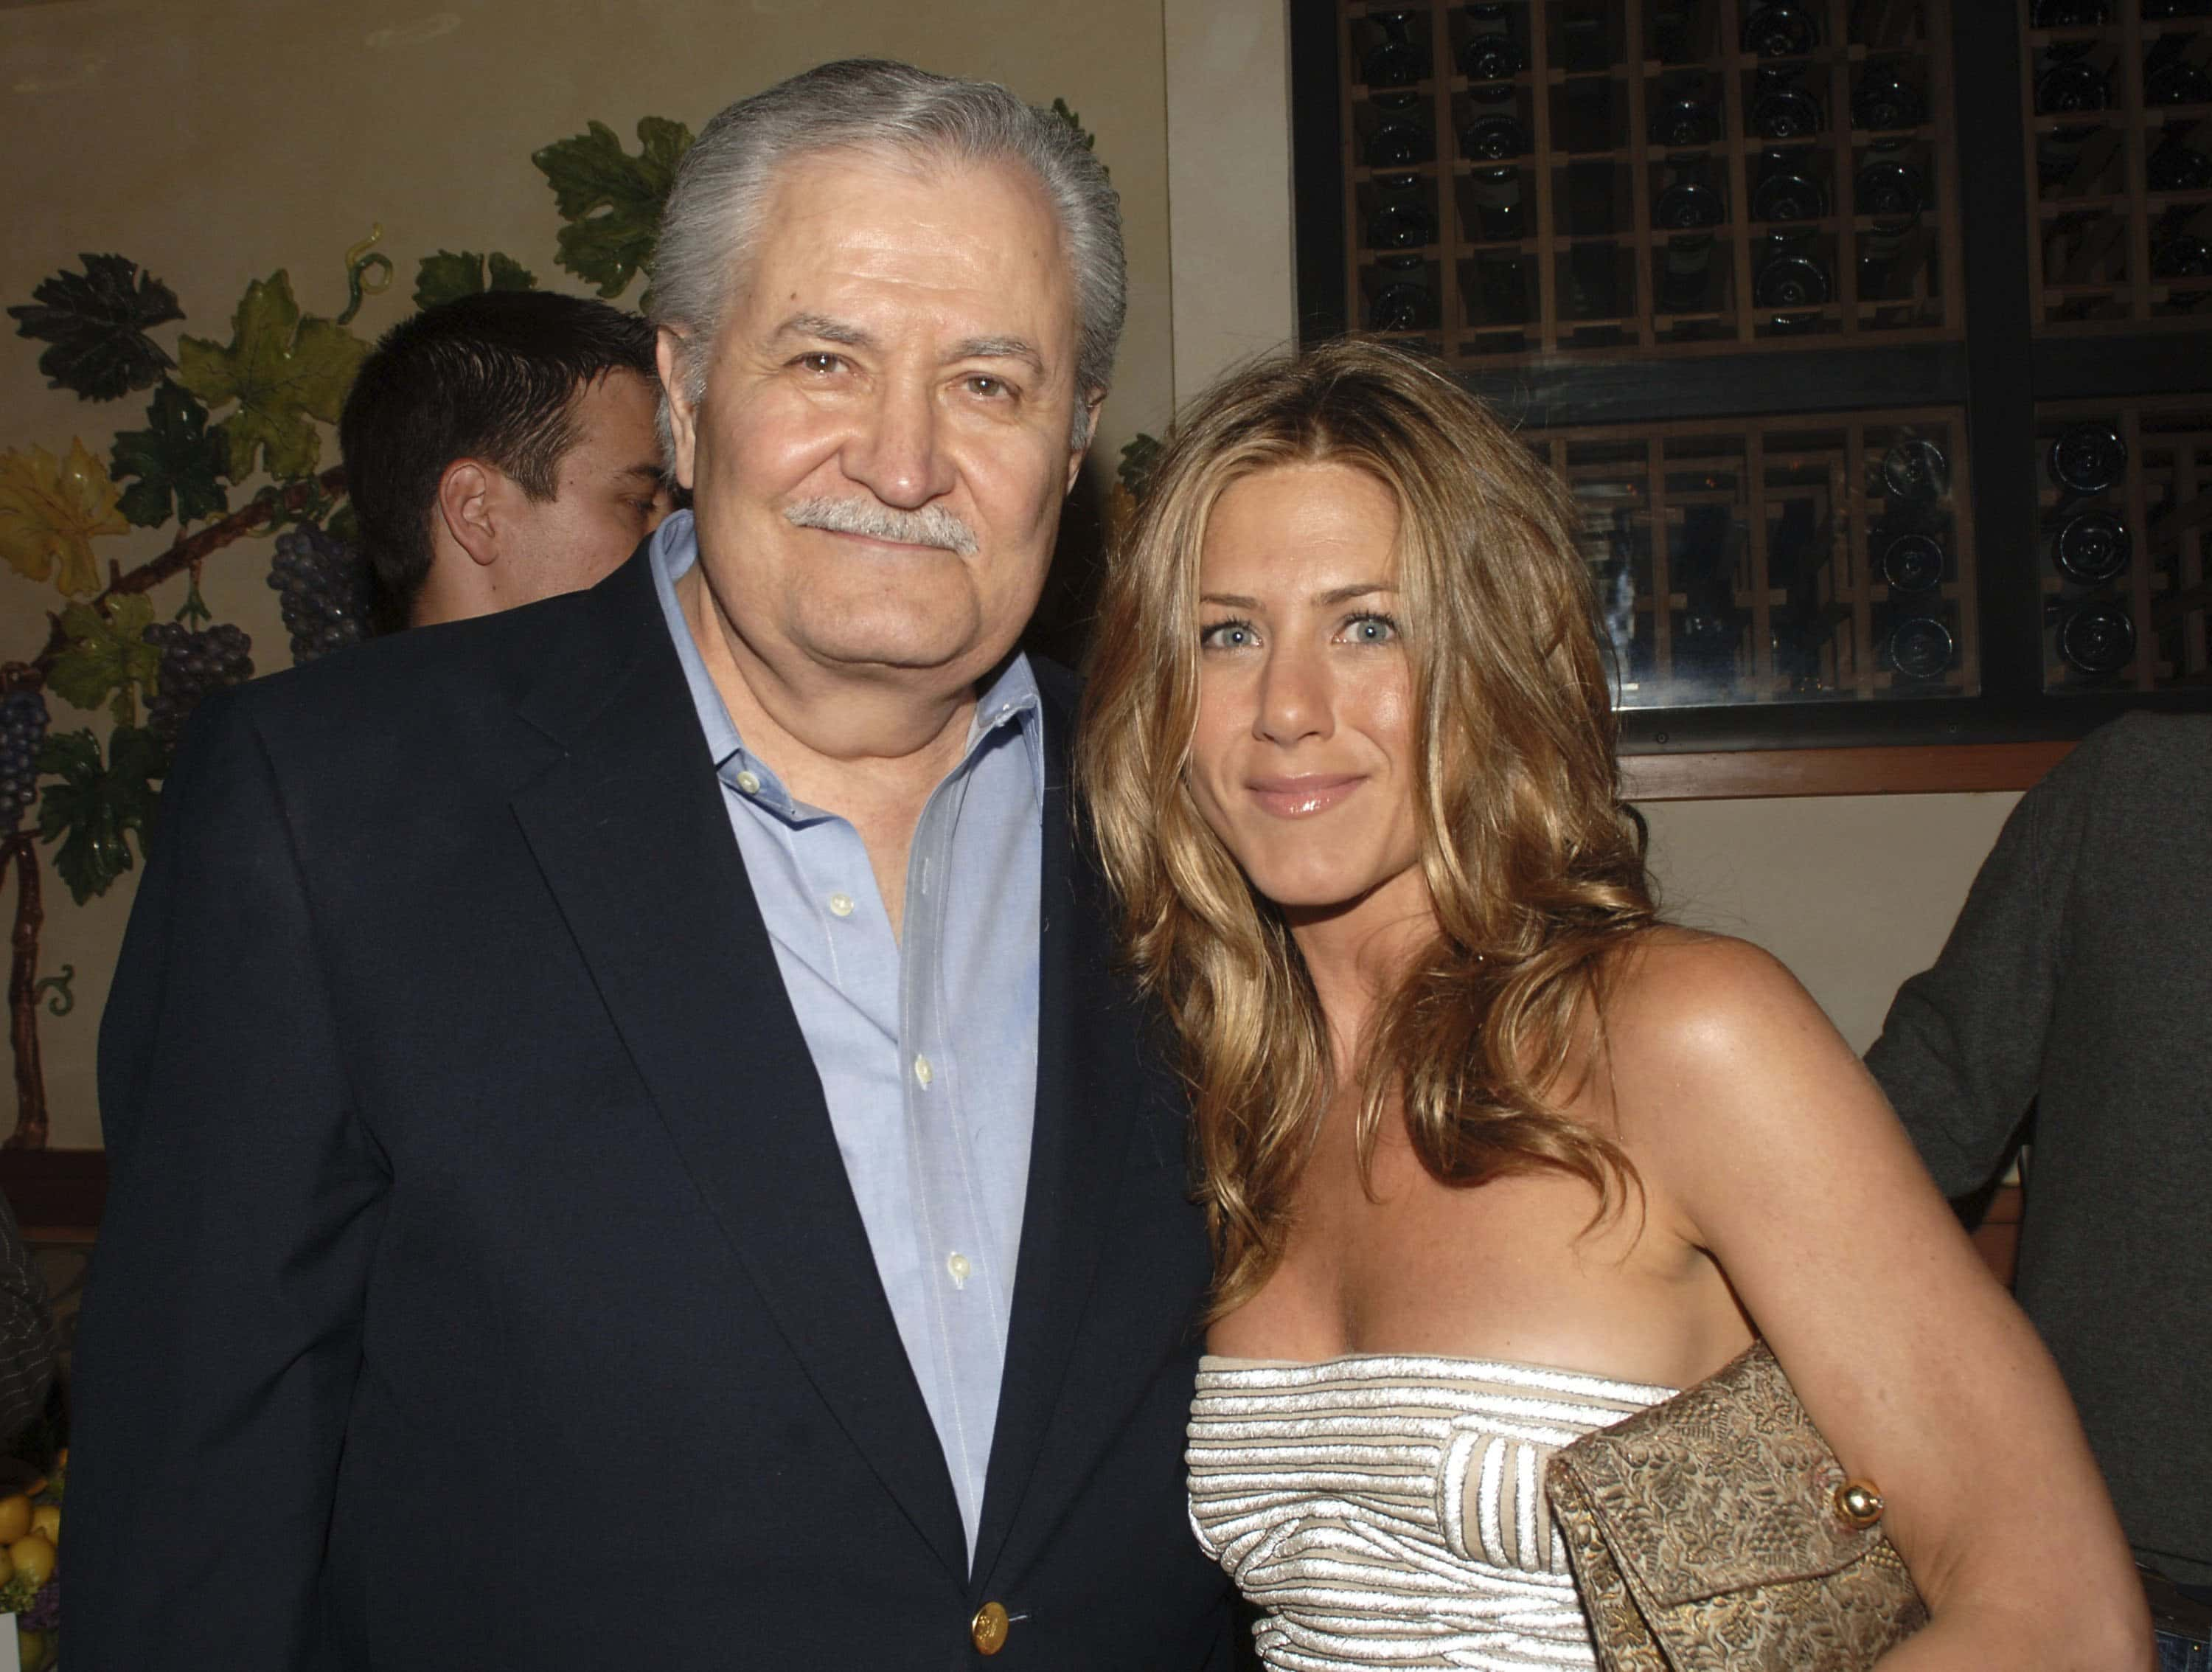 "WESTWOOD, CA - MAY 22: (L-R) Actor John Aniston and daughter actor Jennifer Aniston attend the after party following the world premiere of Universal Pictures ""The Break-Up"" at the Napa Grille on May 22, 2006 in Westwood, California. (Photo by Stephen Shugerman/Getty Images)"